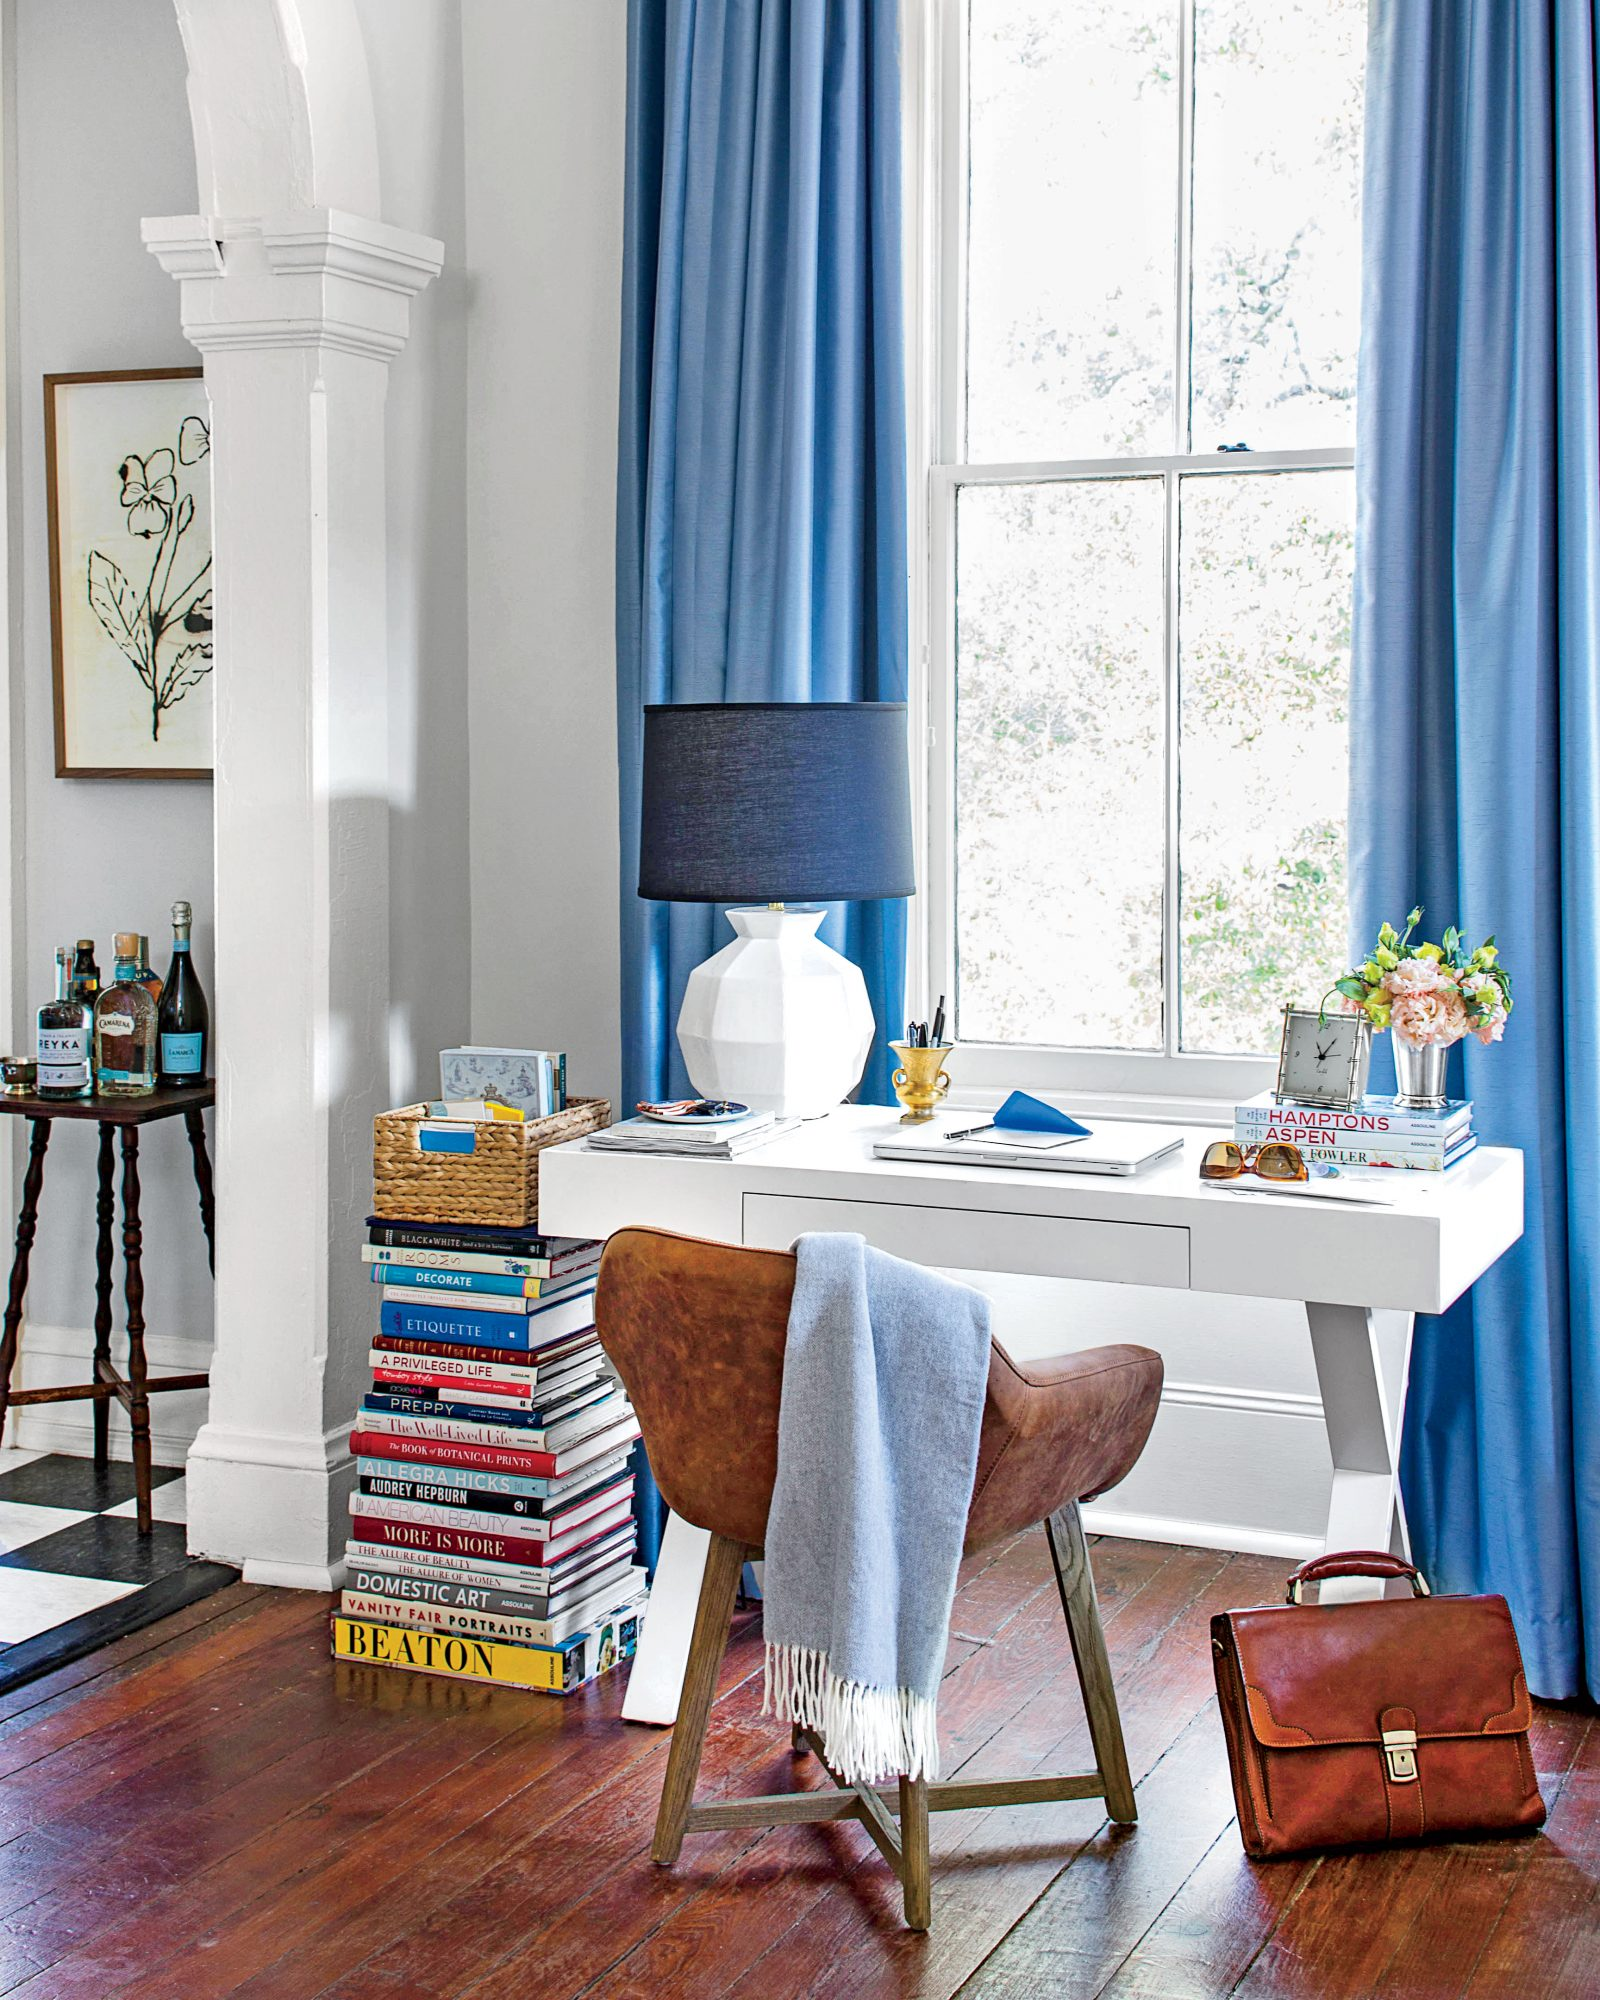 White desk with stack of books as side table